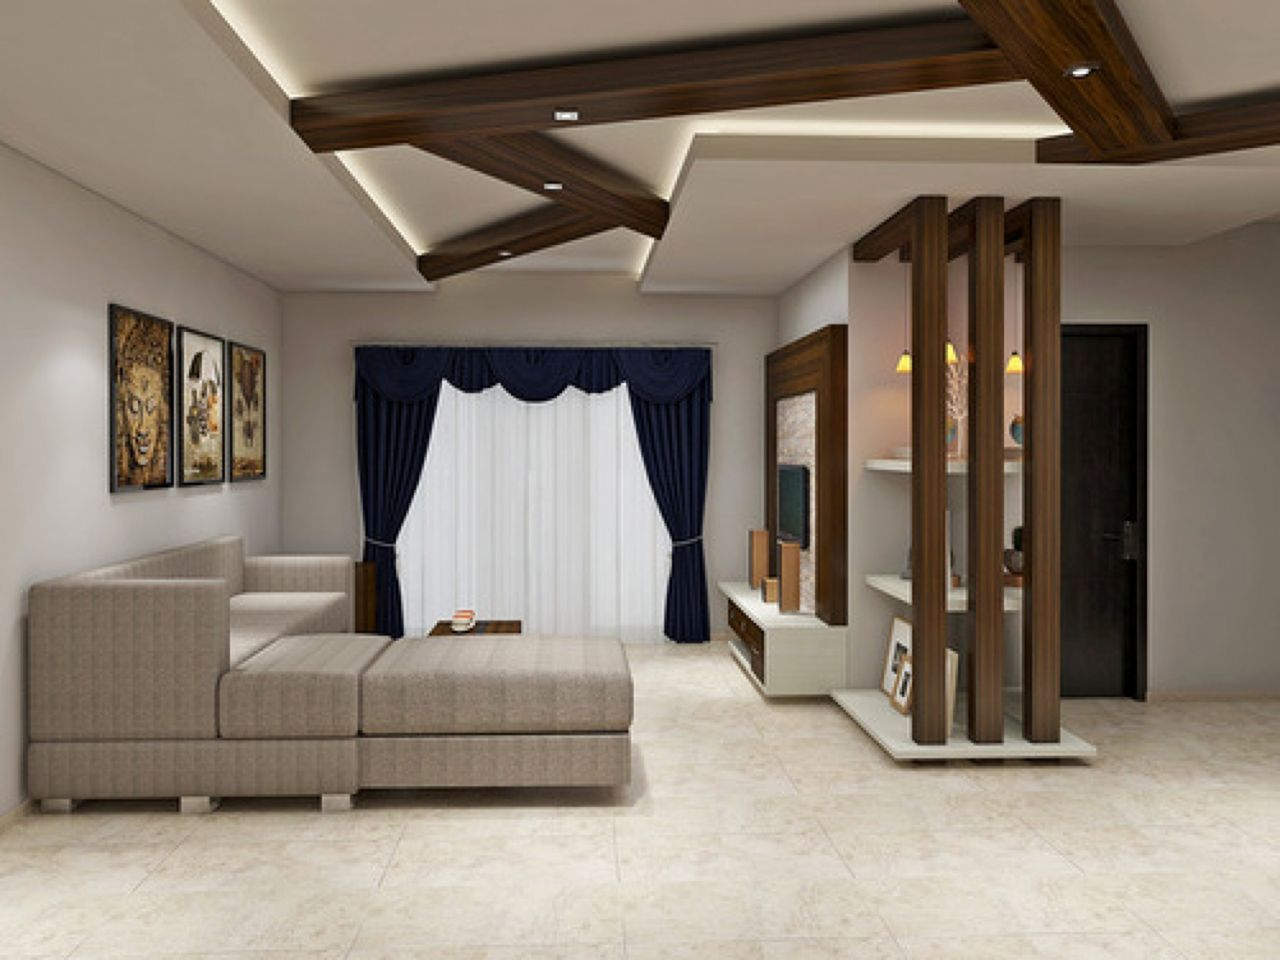 16 House Ceiling Model With An Elegant And Simple Design Moolton